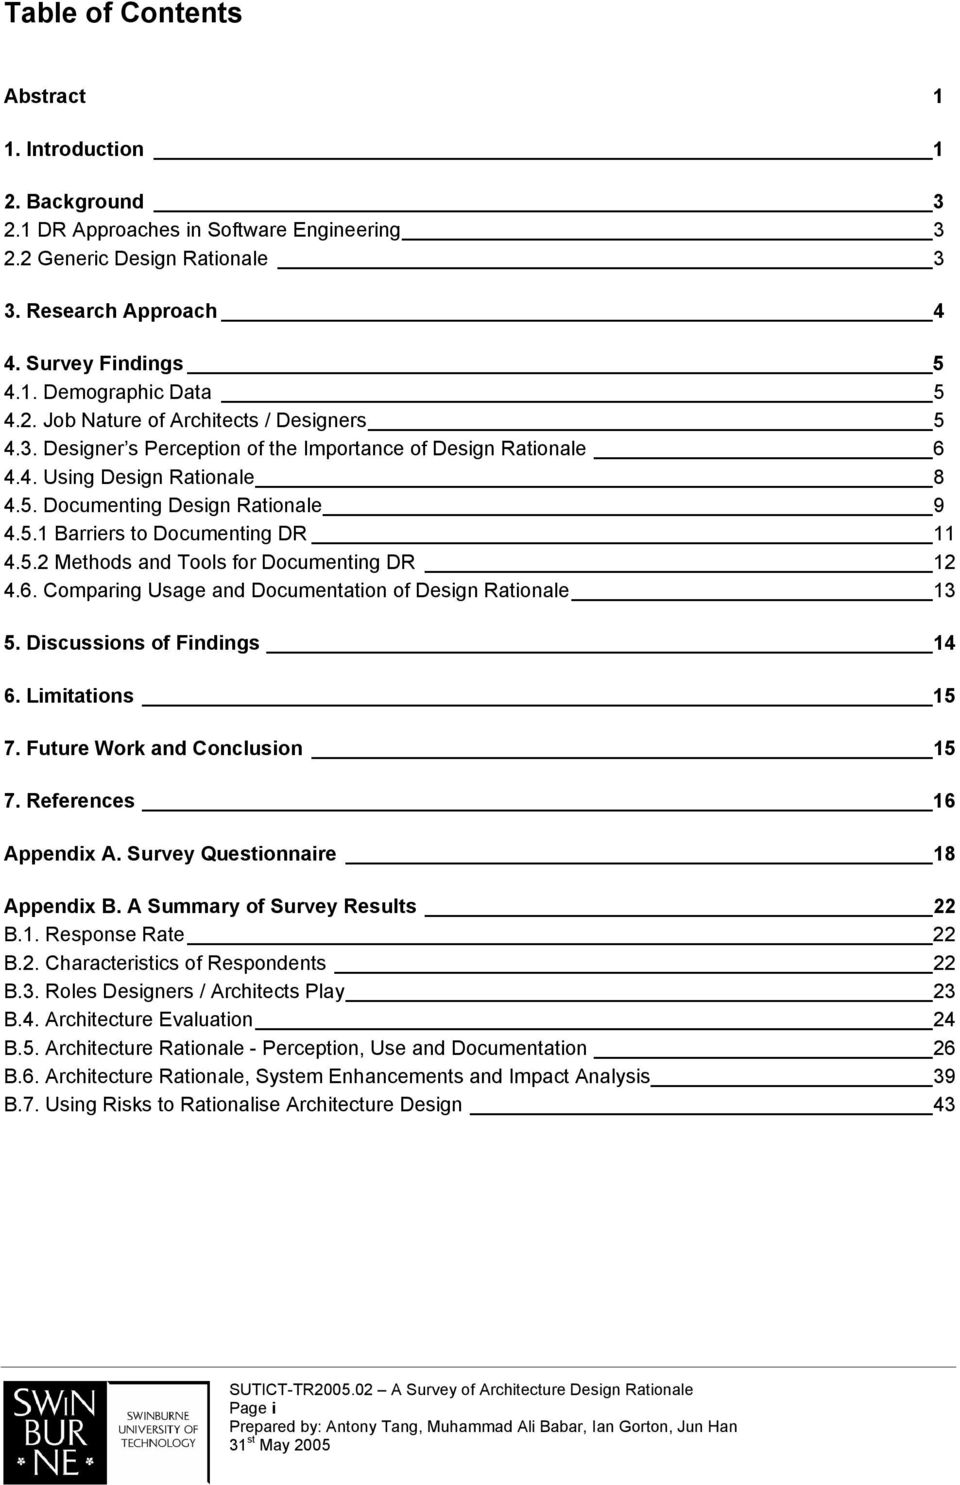 A Survey of Architecture Design Rationale - PDF